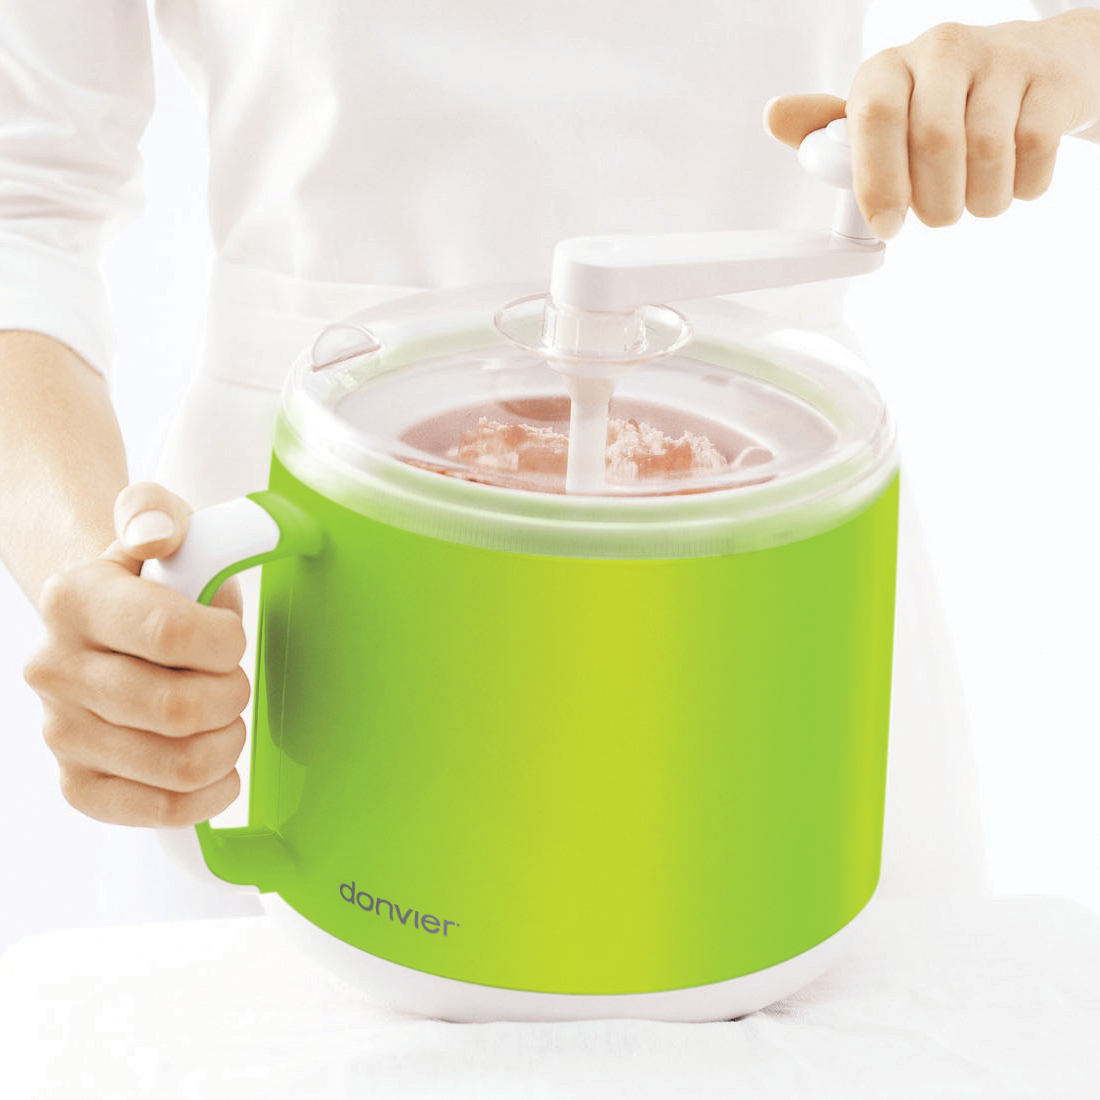 Cuisipro Donvier Green Ice Cream Maker